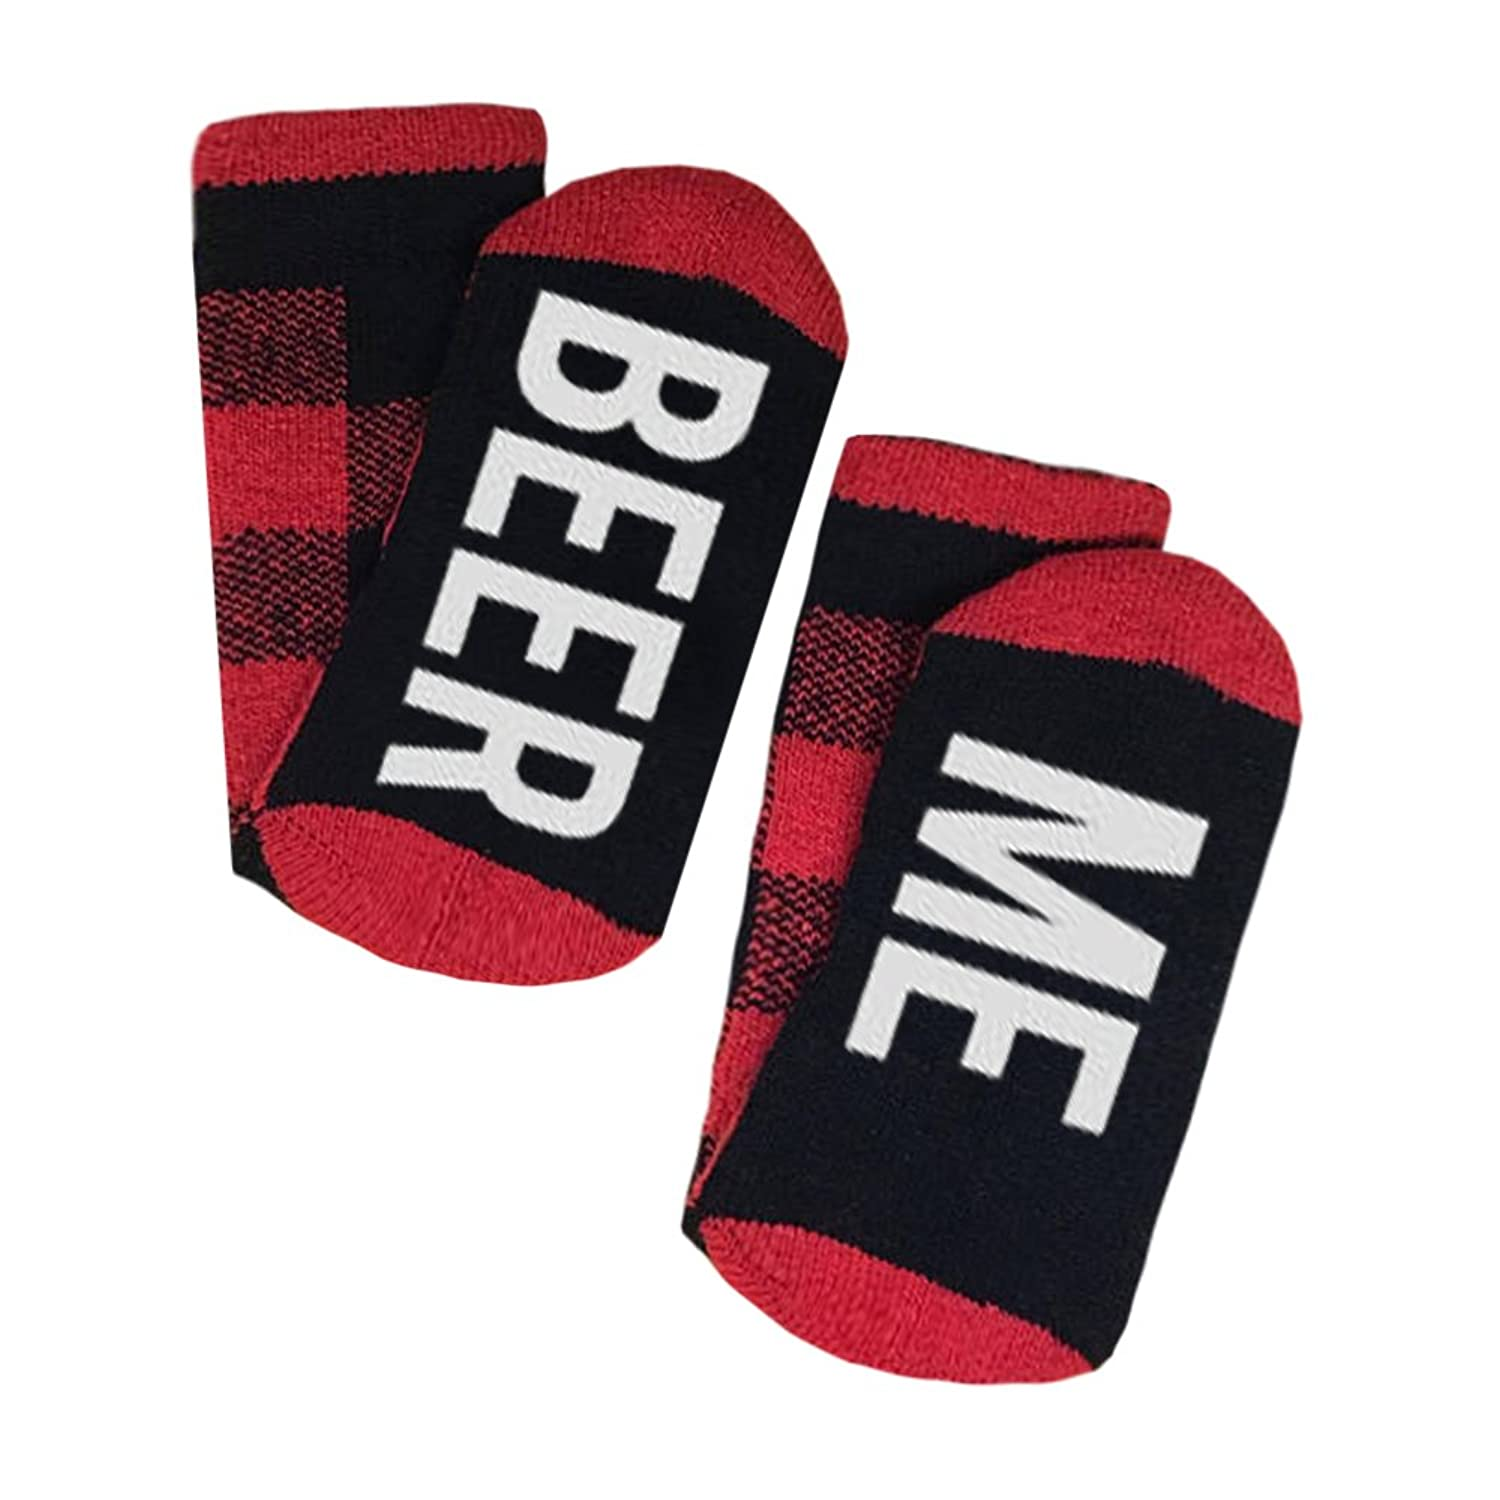 Socks Fun Christmas Crew Socks IF YOU CAN READ THIS BRING ME A GLASS OF WINE Men Women